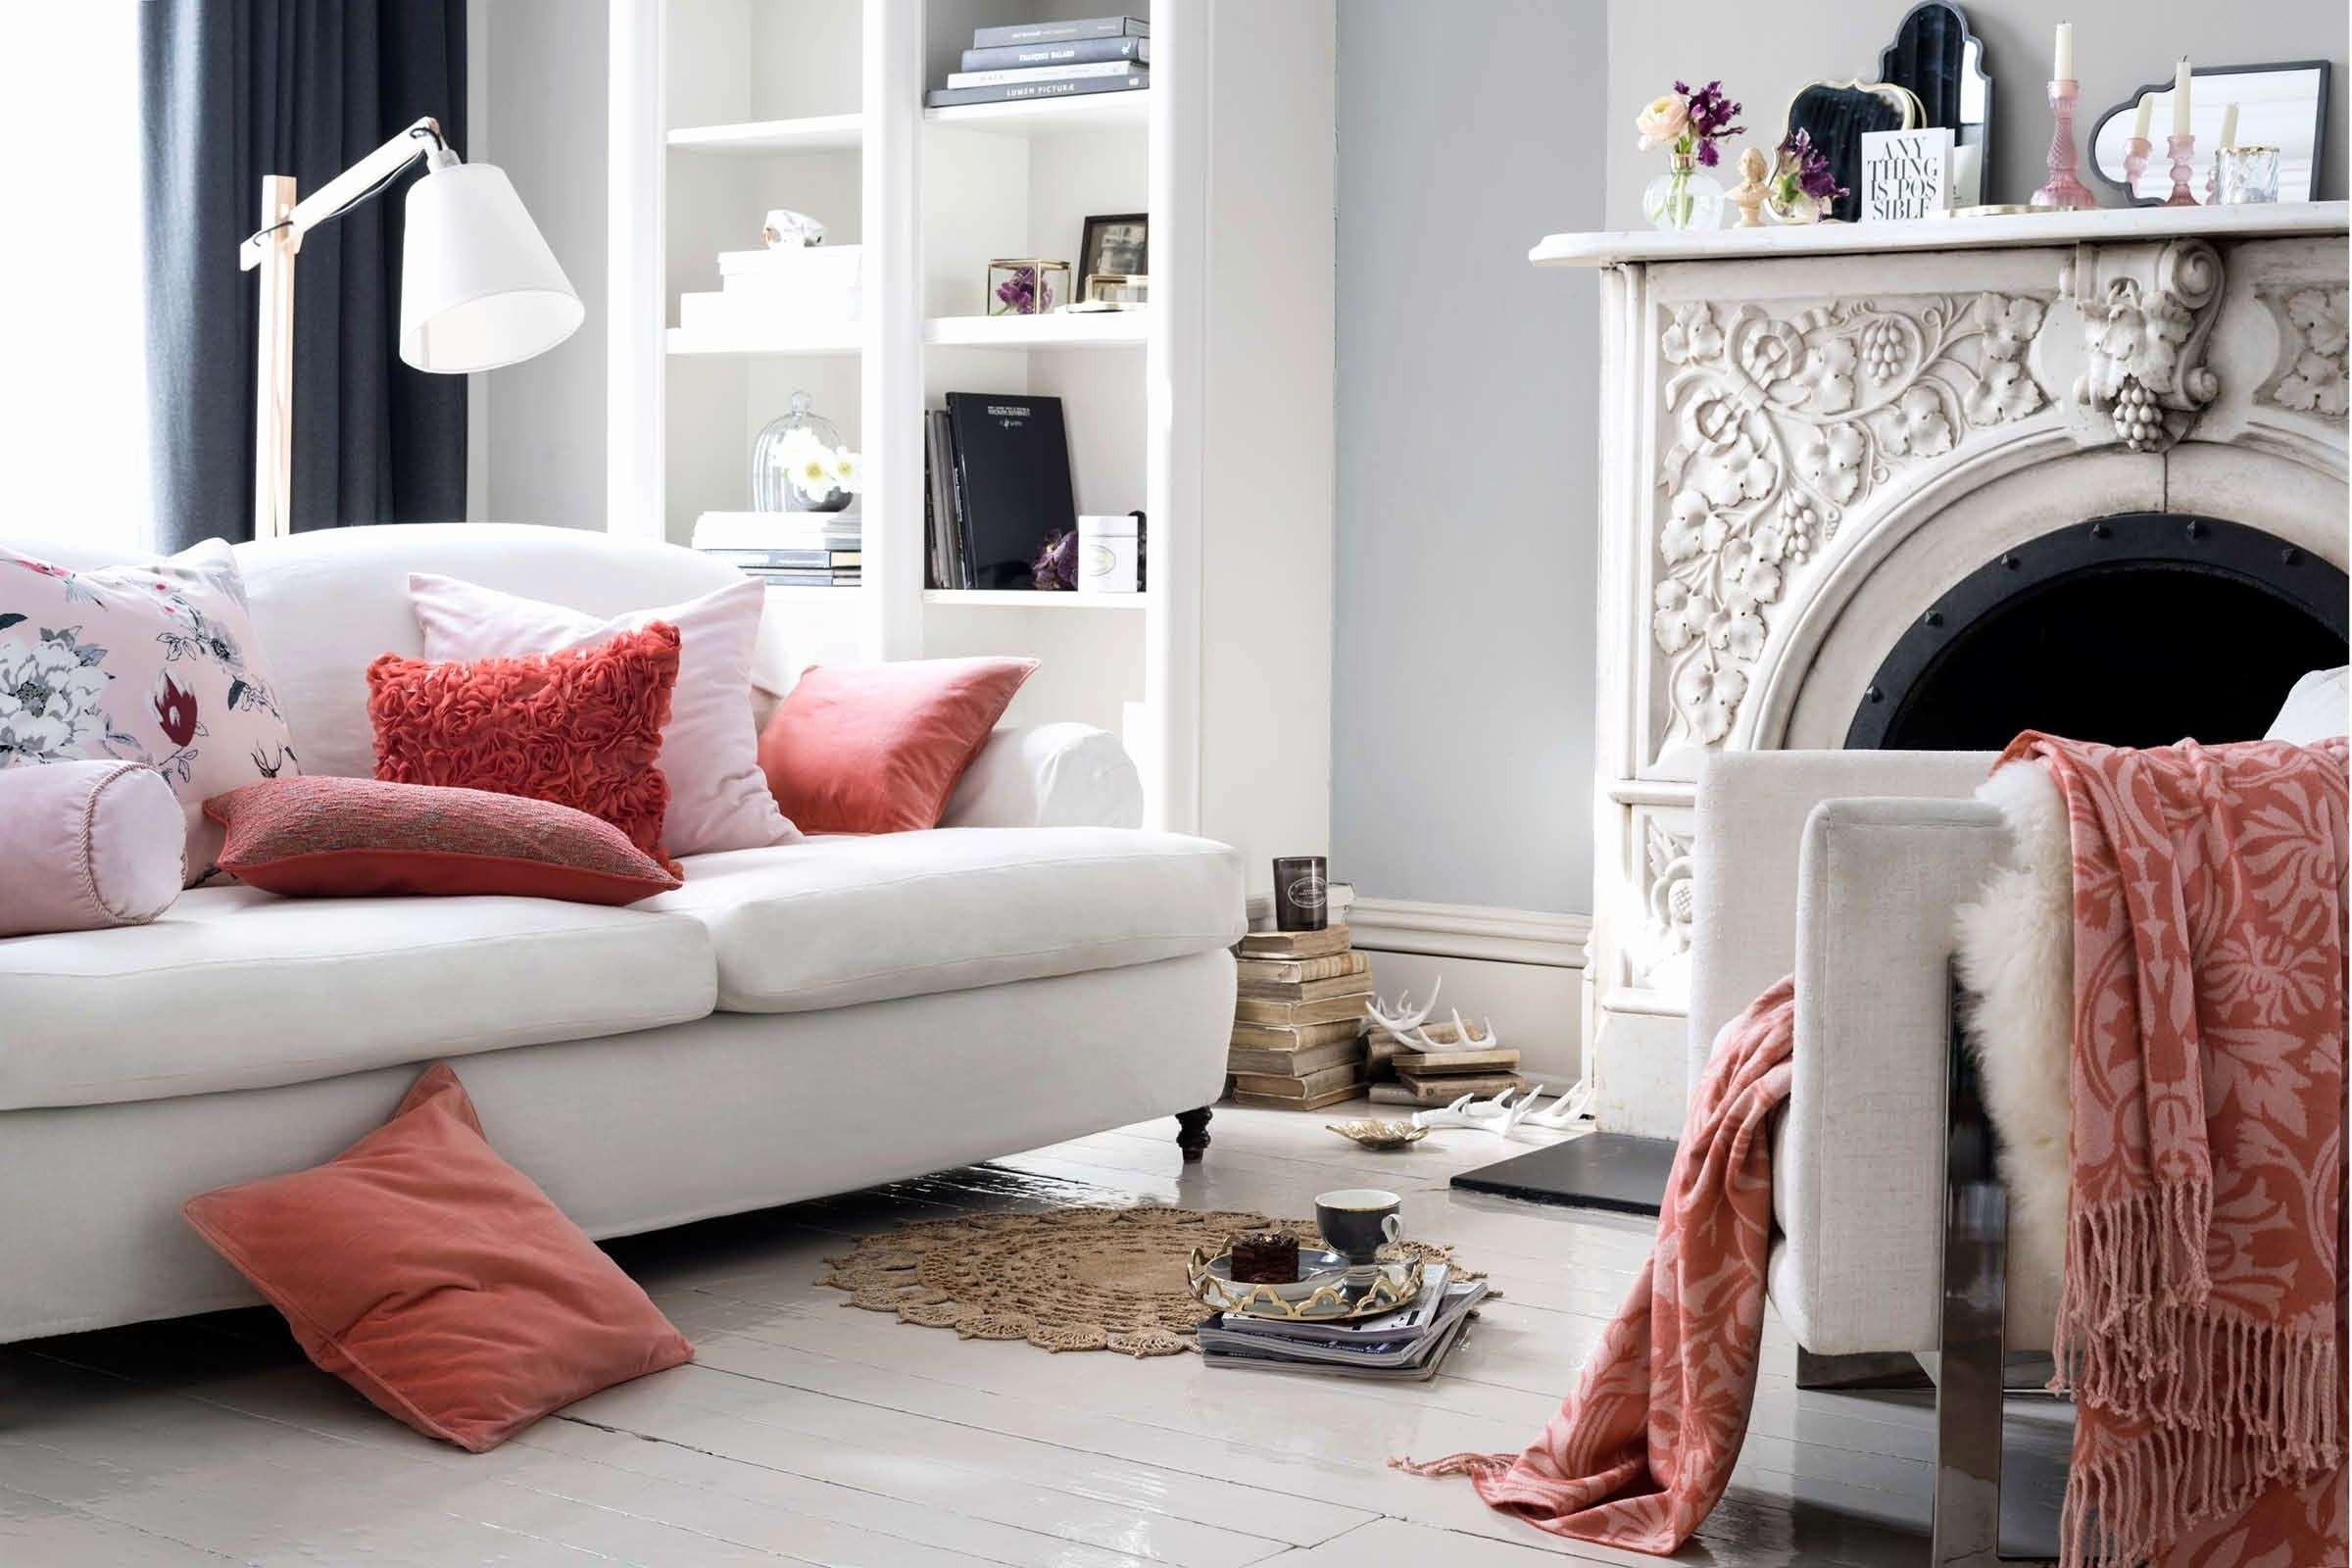 Couture Events Nautical Bedroom Decor Coral Bedroom Ideas Fresh Coral Home Decor Best Living Room Couture Events